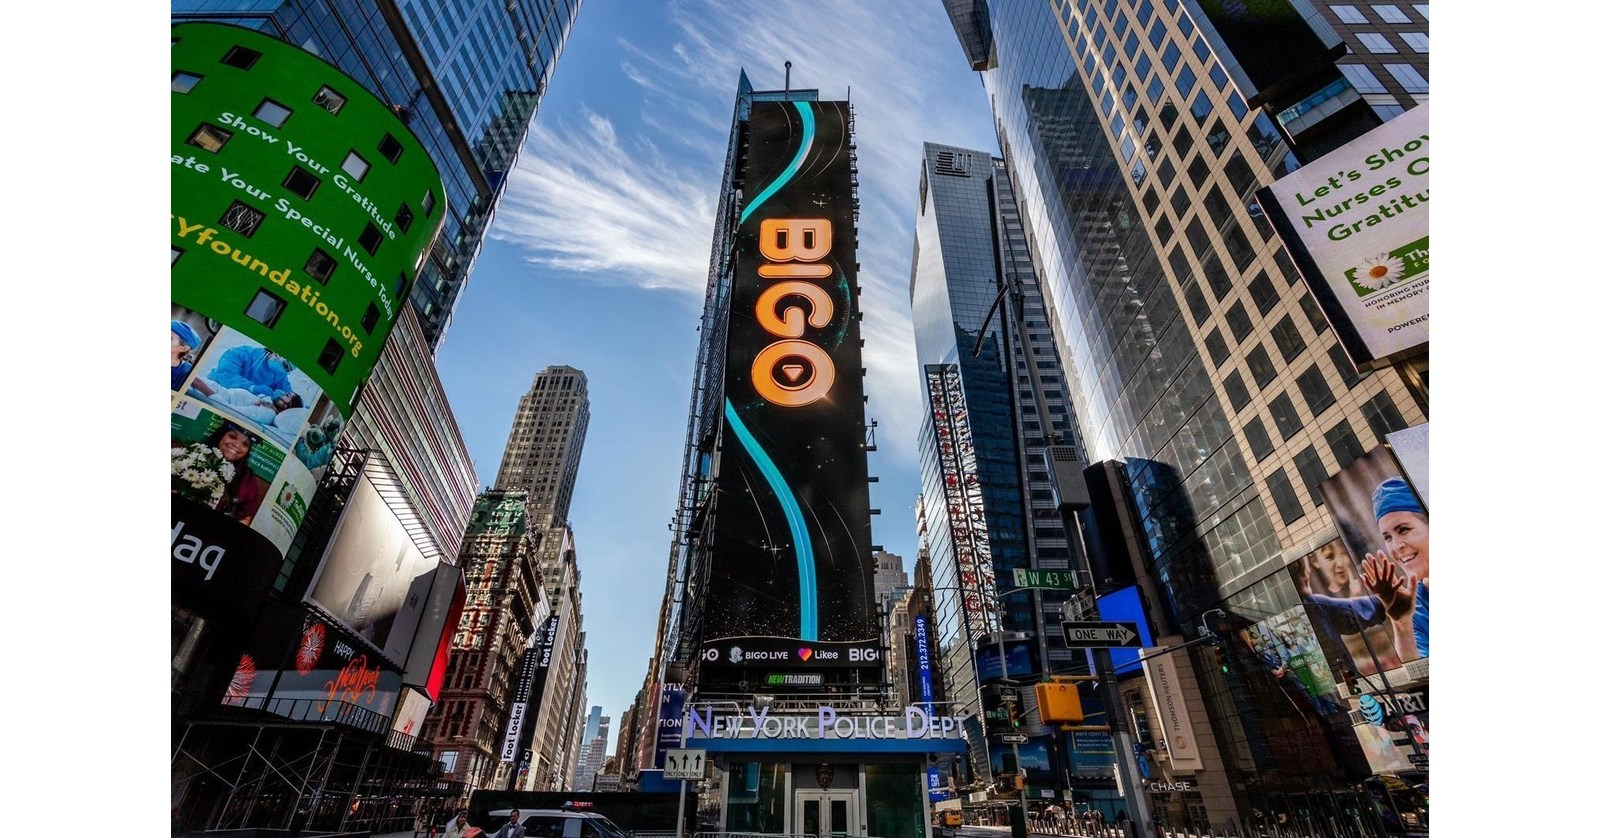 Bigo Live Reports Massive Growth and Momentum Heading into 2021 as Global Audiences Embrace Live Streaming for Real Time Connections